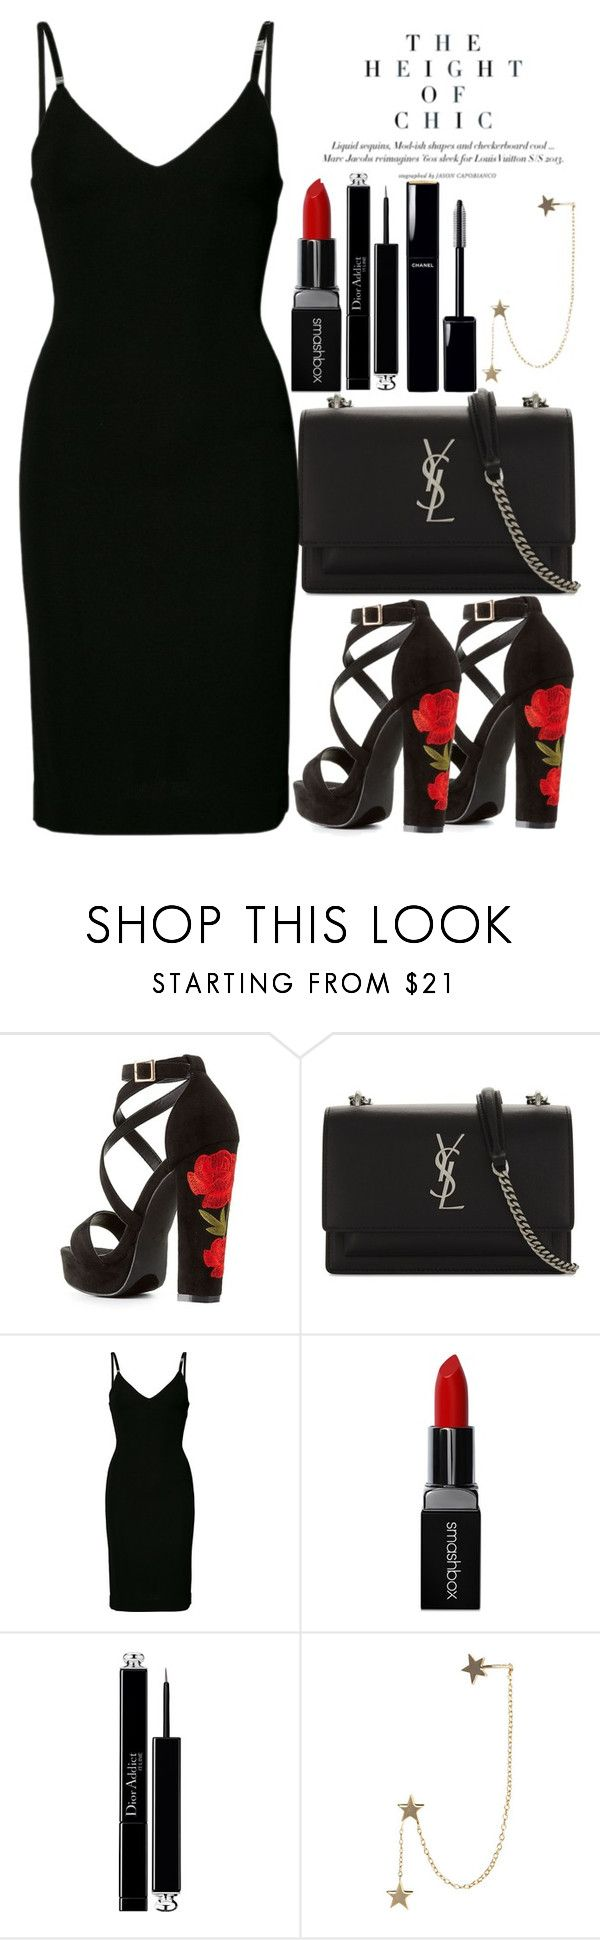 """Untitled #1827"" by mihai-theodora ❤ liked on Polyvore featuring Charlotte Russe, Yves Saint Laurent, Dsquared2, Smashbox, Christian Dior, Chanel and Zimmermann"